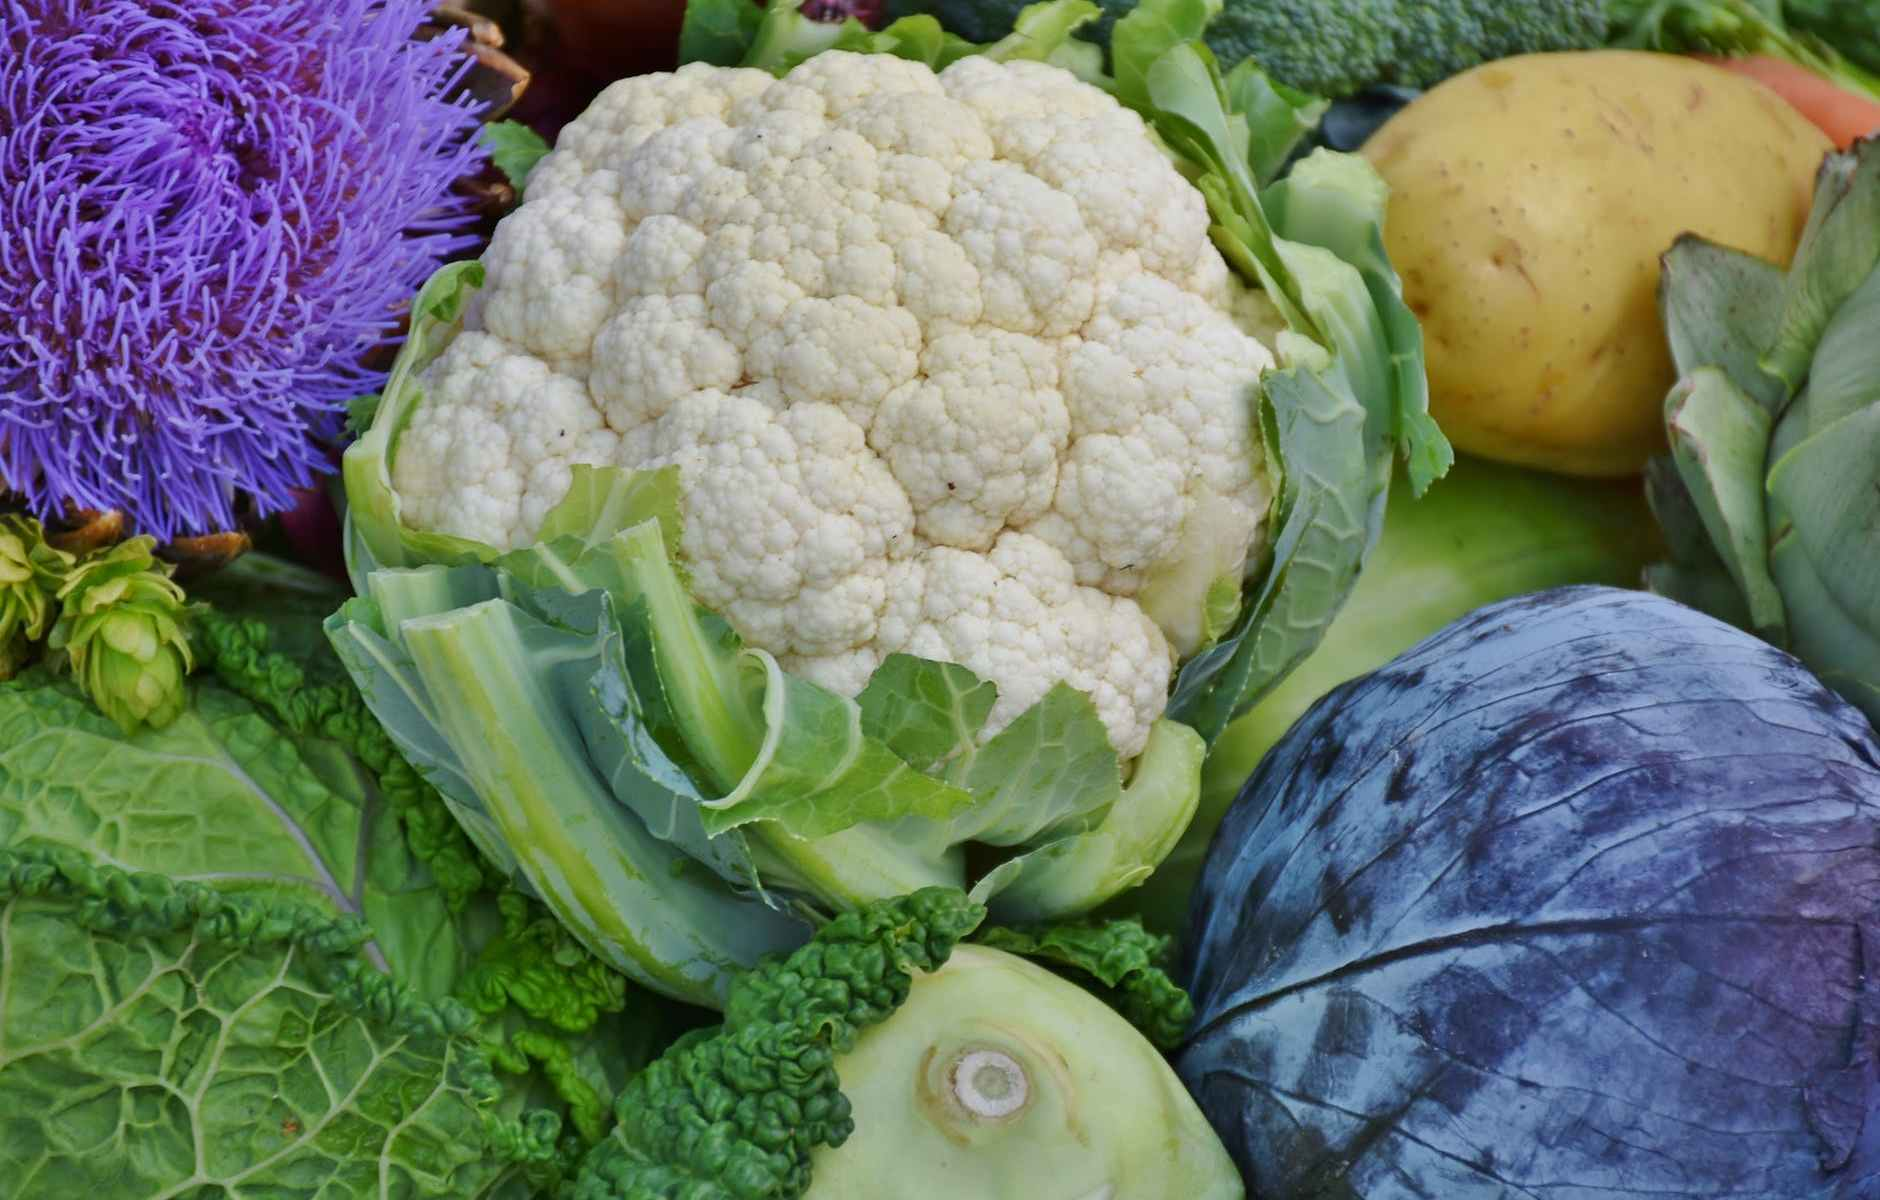 Cauliflower is beneficial to our health